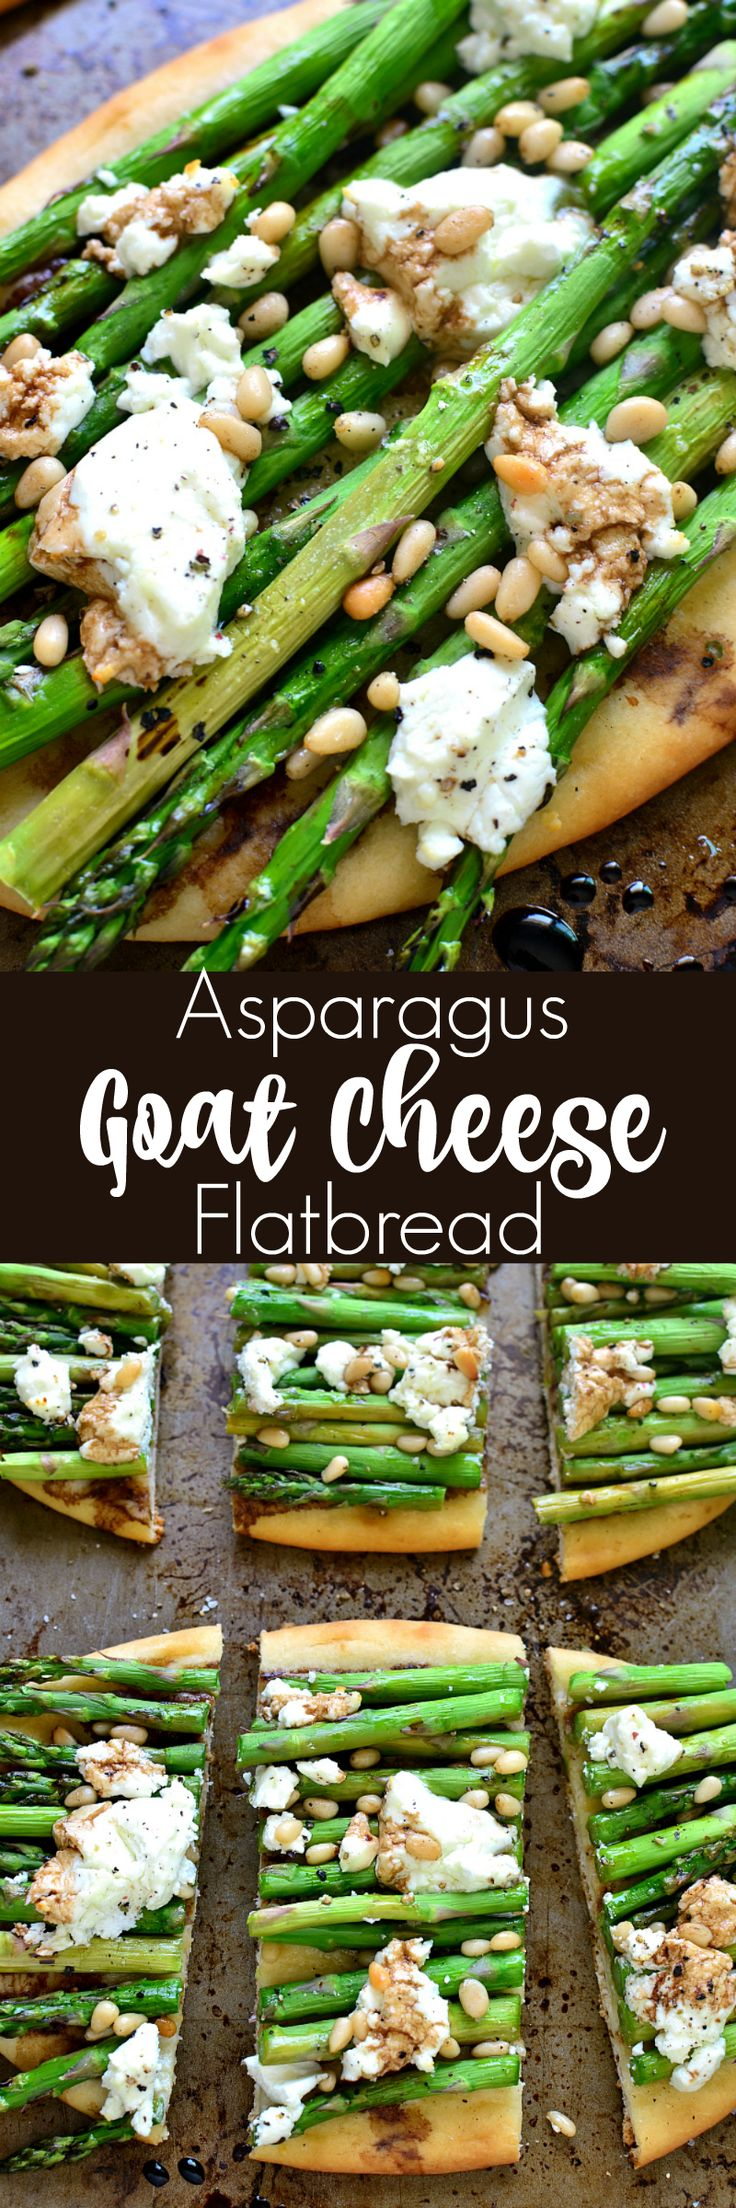 ... 10 minutes, and loaded with delicious flavor! The perfect appetizer